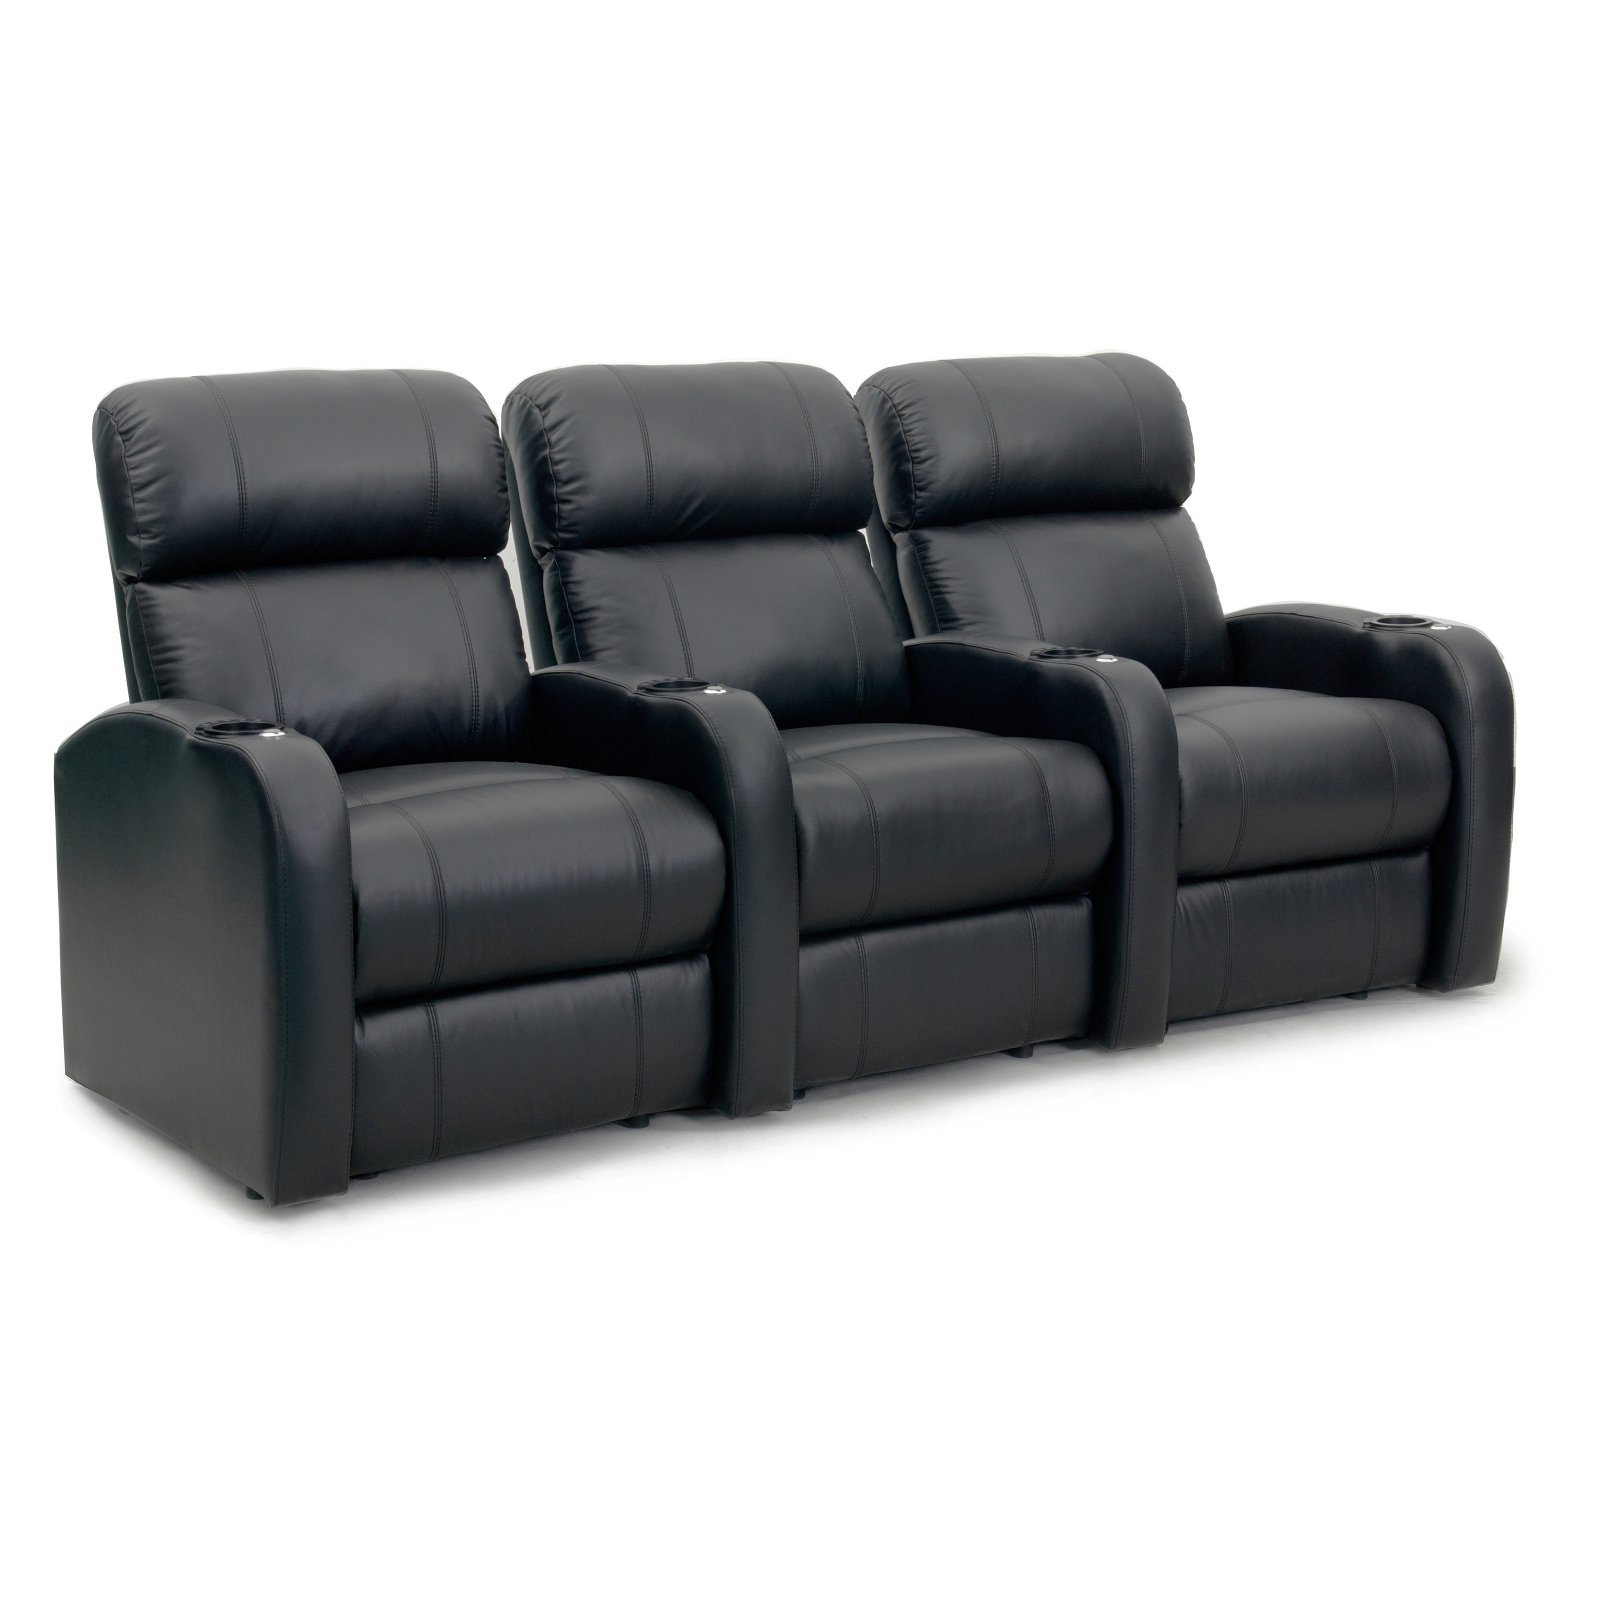 Octane Diesel XS950 3 Seater Home Theater Seating